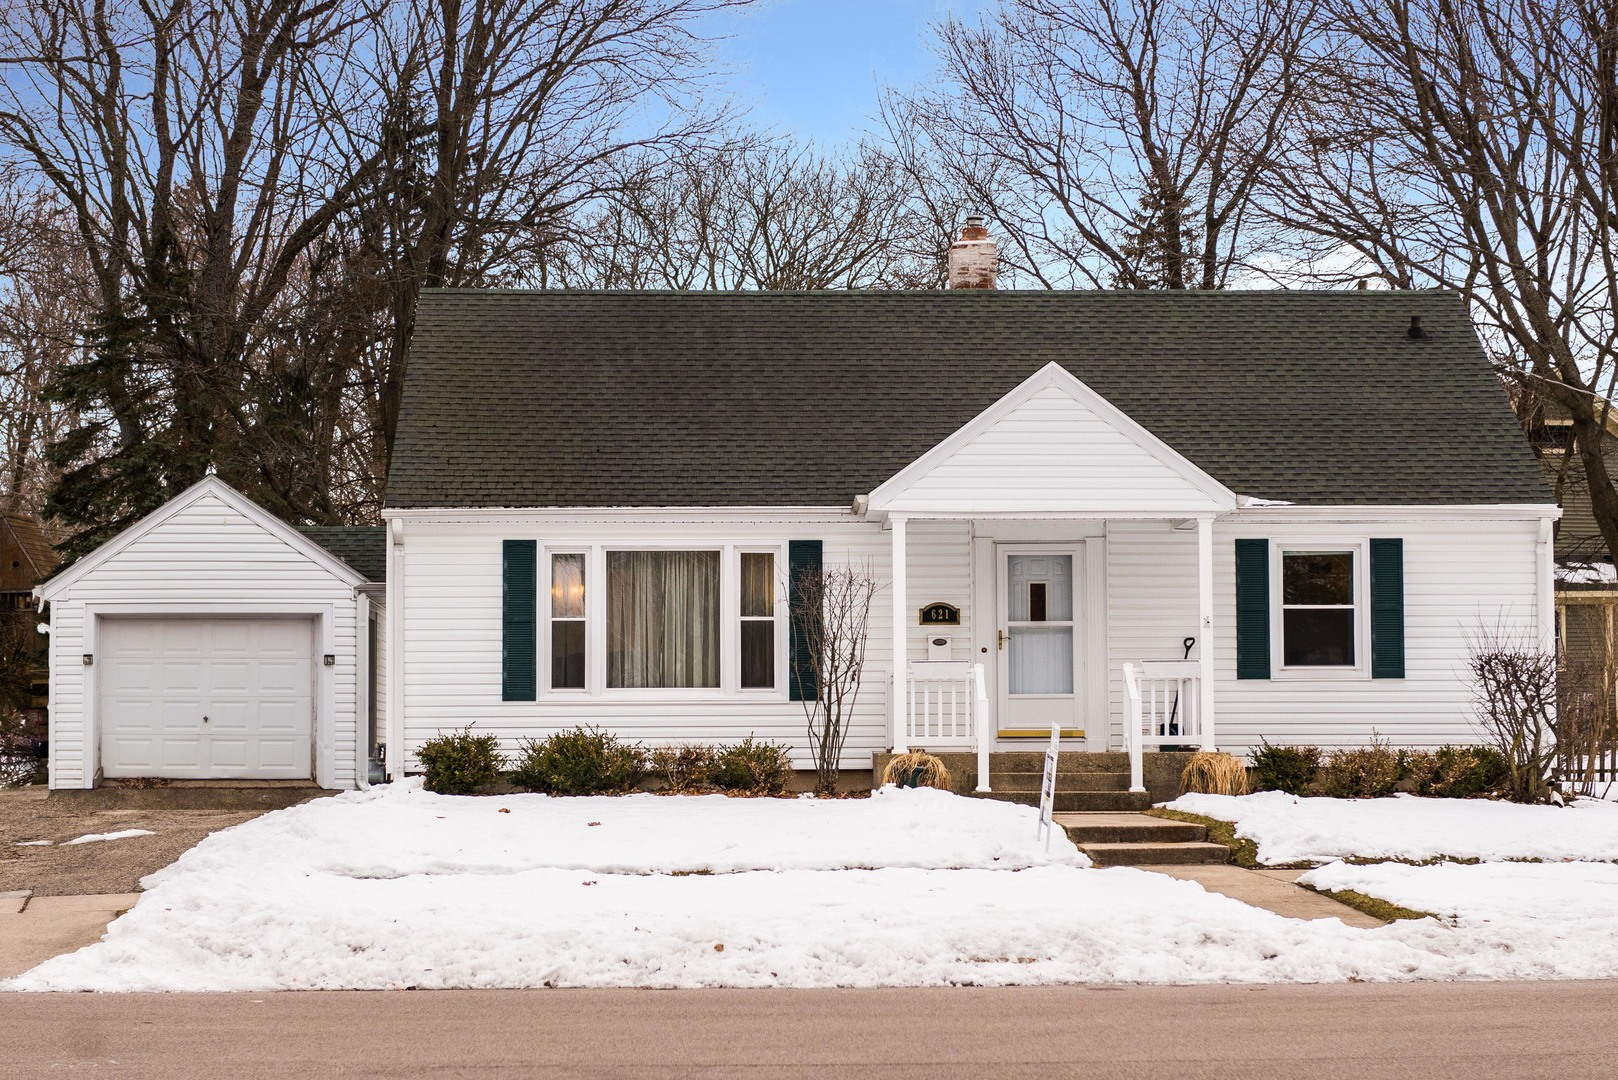 Photo for 621 Meadow Lane, Sycamore, IL 60178 (MLS # 10630624)